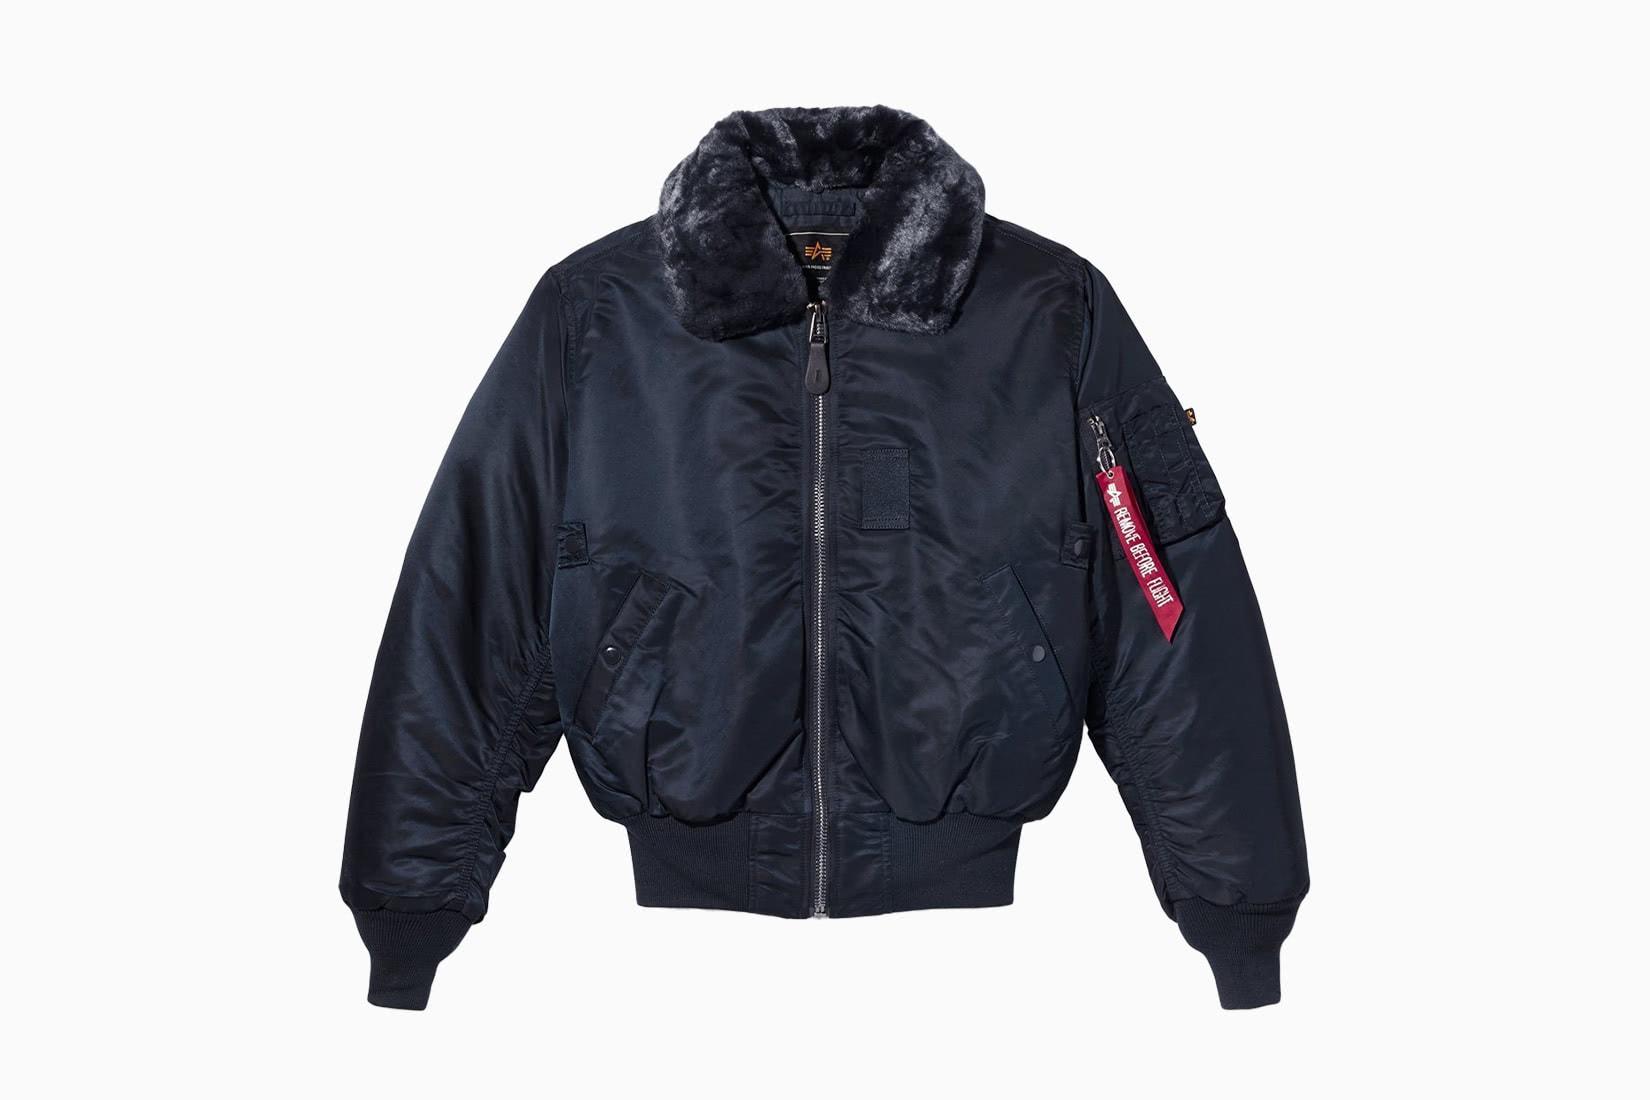 best men bomber jacket winter Alpha Industries B-15 review - Luxe Digital